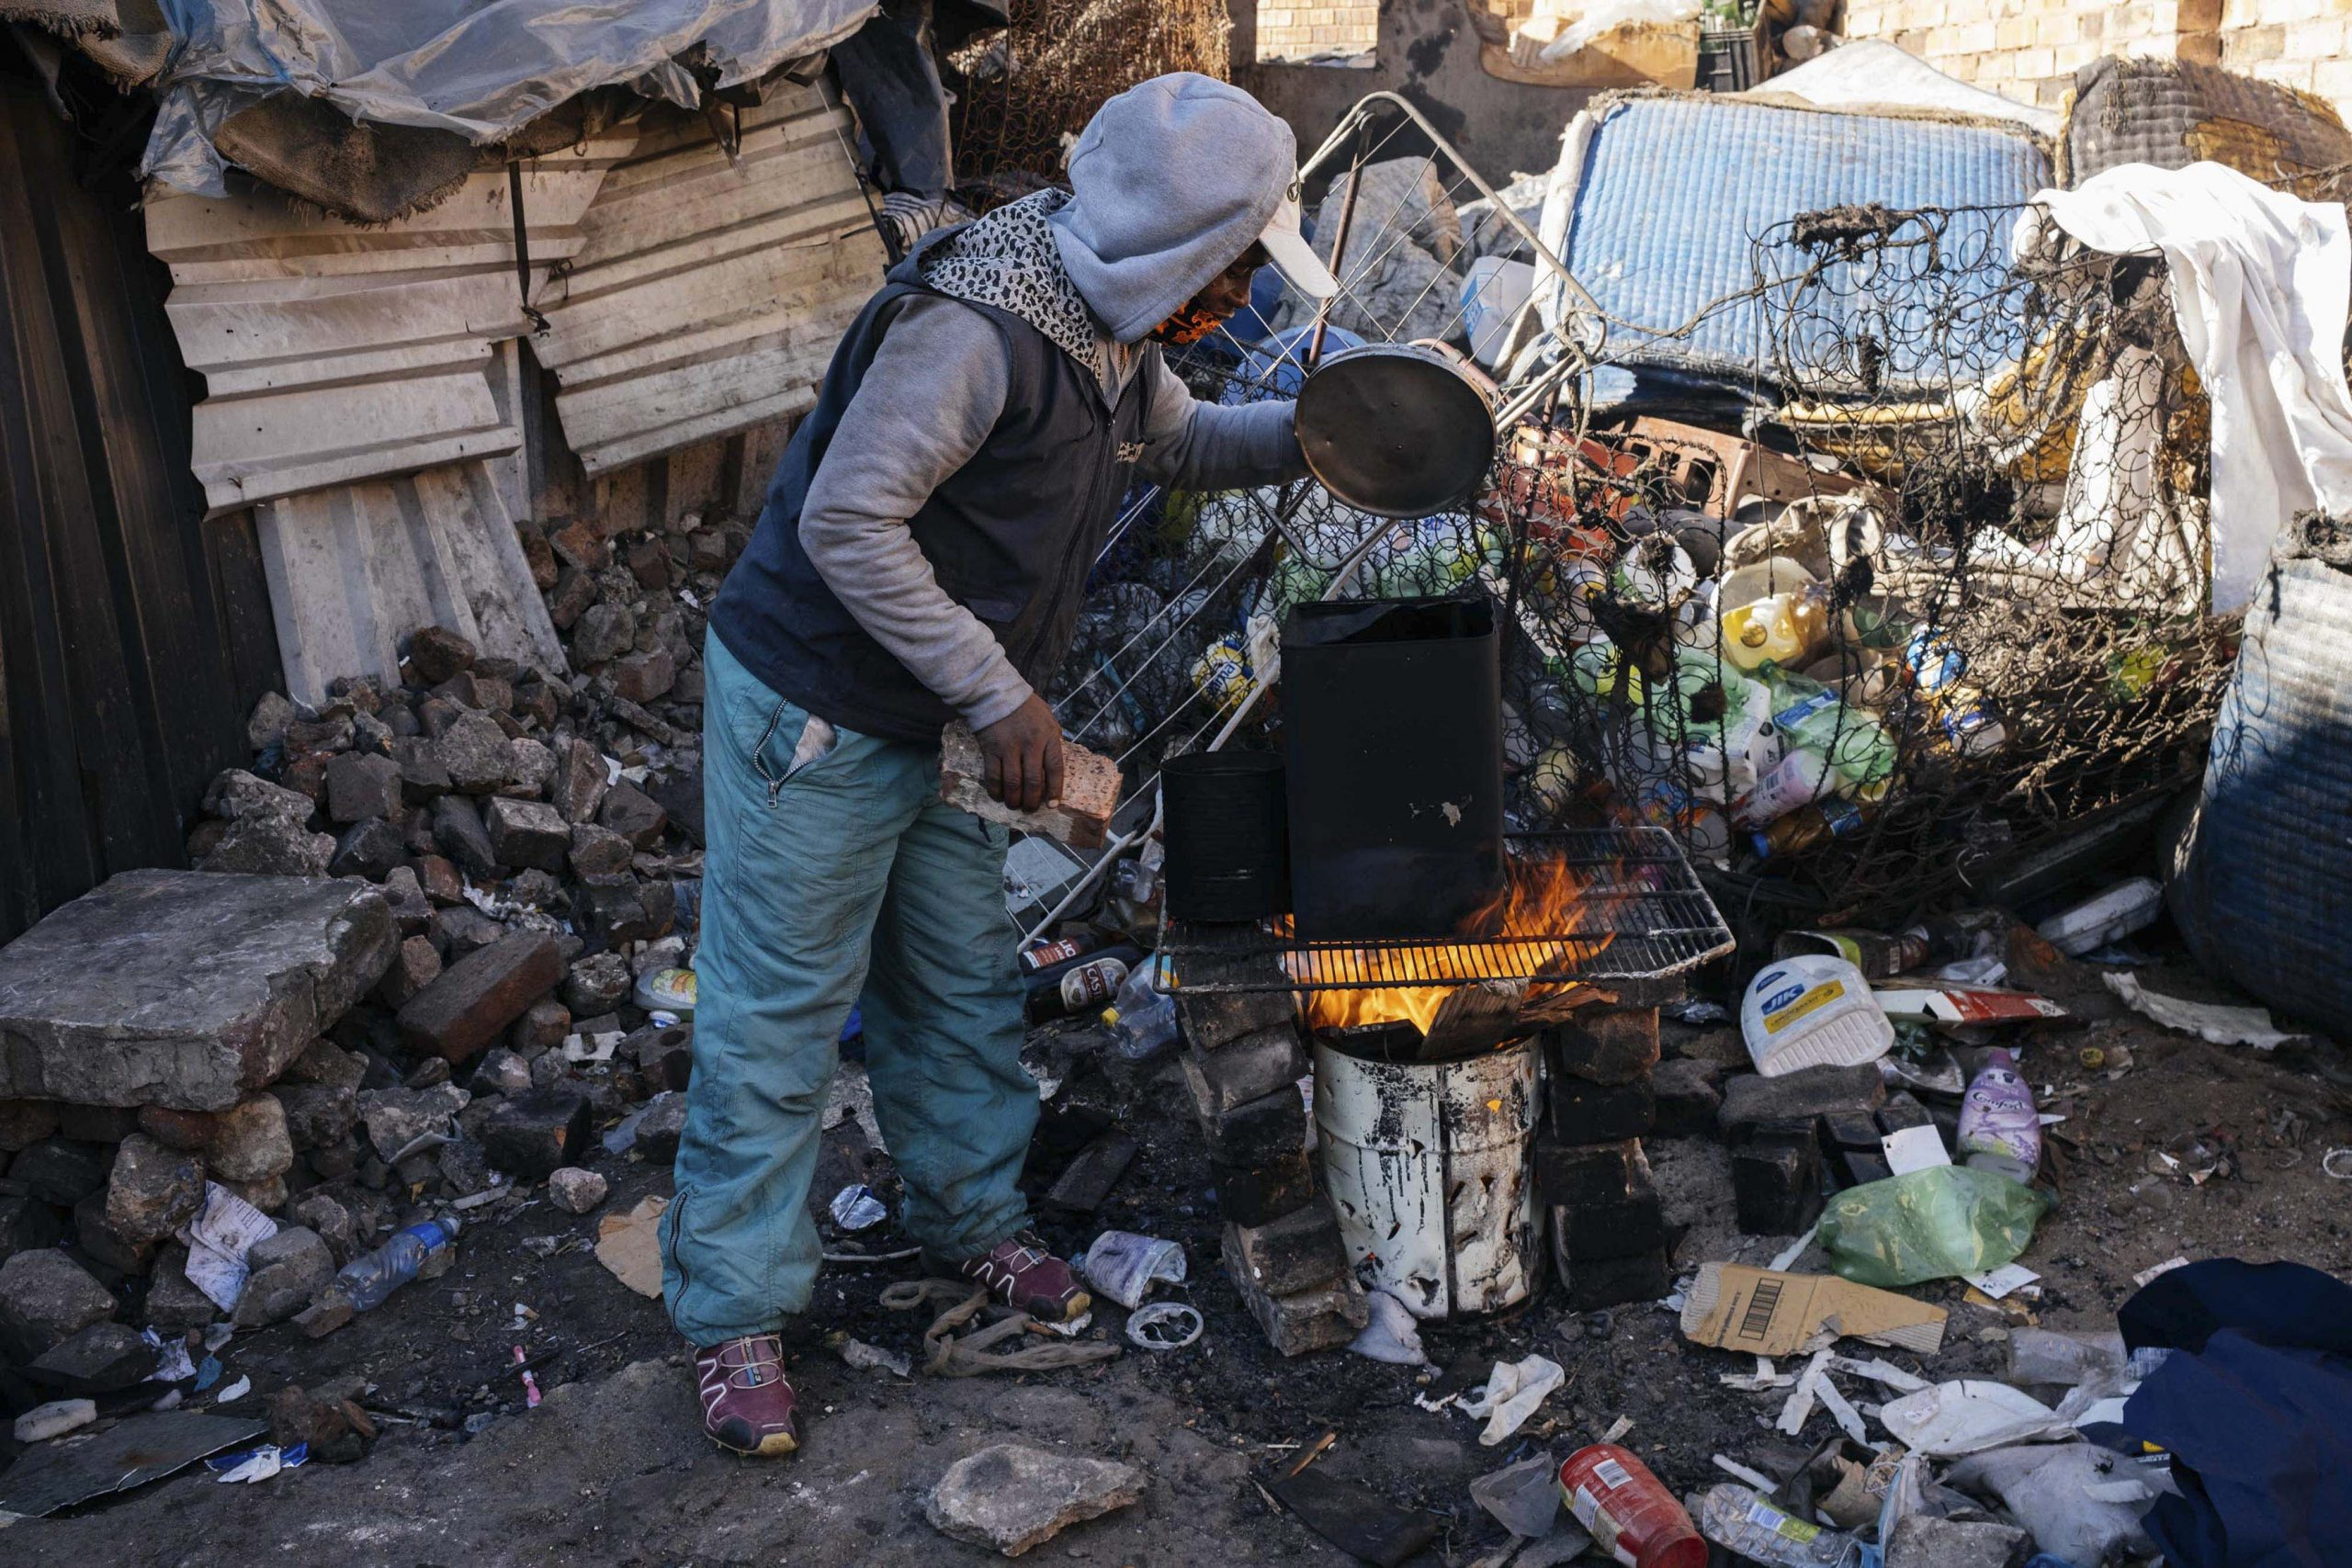 16 July 2020: Ramaketse Rampaleng, 34, warms himself at a fire at the Gomorrah Building in Johannesburg's inner city. He makes a living working in the city's informal recycling sector, but worries that collecting waste may expose him to the coronavirus. Despite not having access to running water at Gomorrah, which prevents him from regularly washing his hands, he has to keep working to survive.